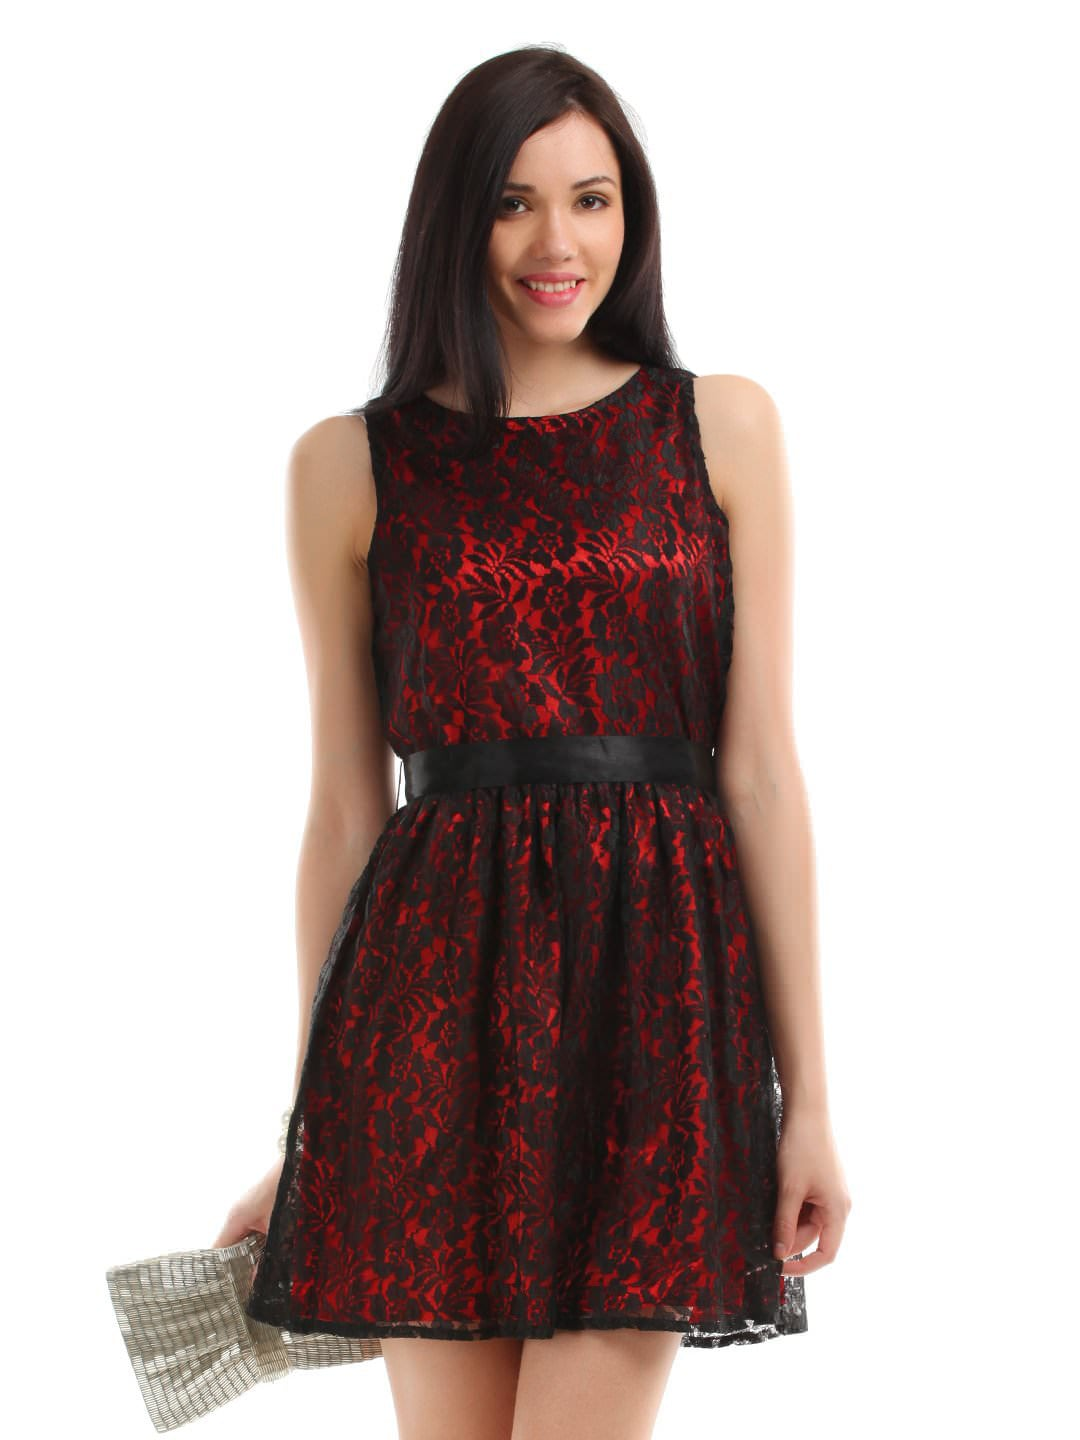 Buy the latest women's Red dresses online at low price. StyleWe offers cheap dresses in red, black, white and more for different occasions. Lace Dresses Tops Red Crew Neck Paneled Polyester Elegant Midi Dress. $ Free Shipping. Quick Shop.